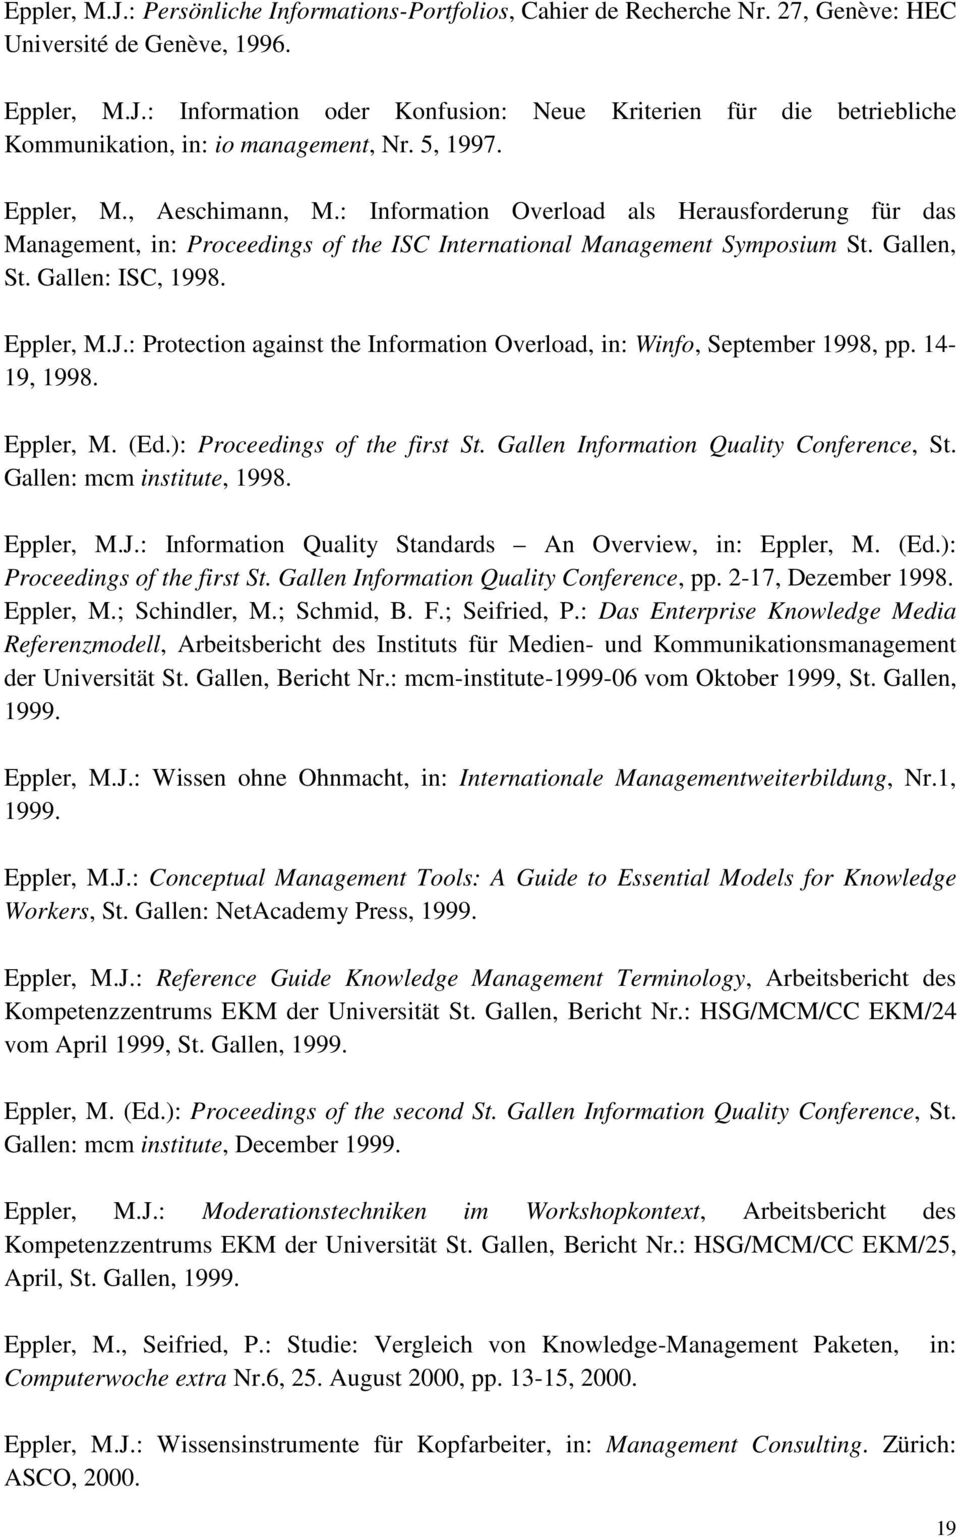 Eppler, M.J.: Protection against the Information Overload, in: Winfo, September 1998, pp. 14-19, 1998. Eppler, M. (Ed.): Proceedings of the first St. Gallen Information Quality Conference, St.